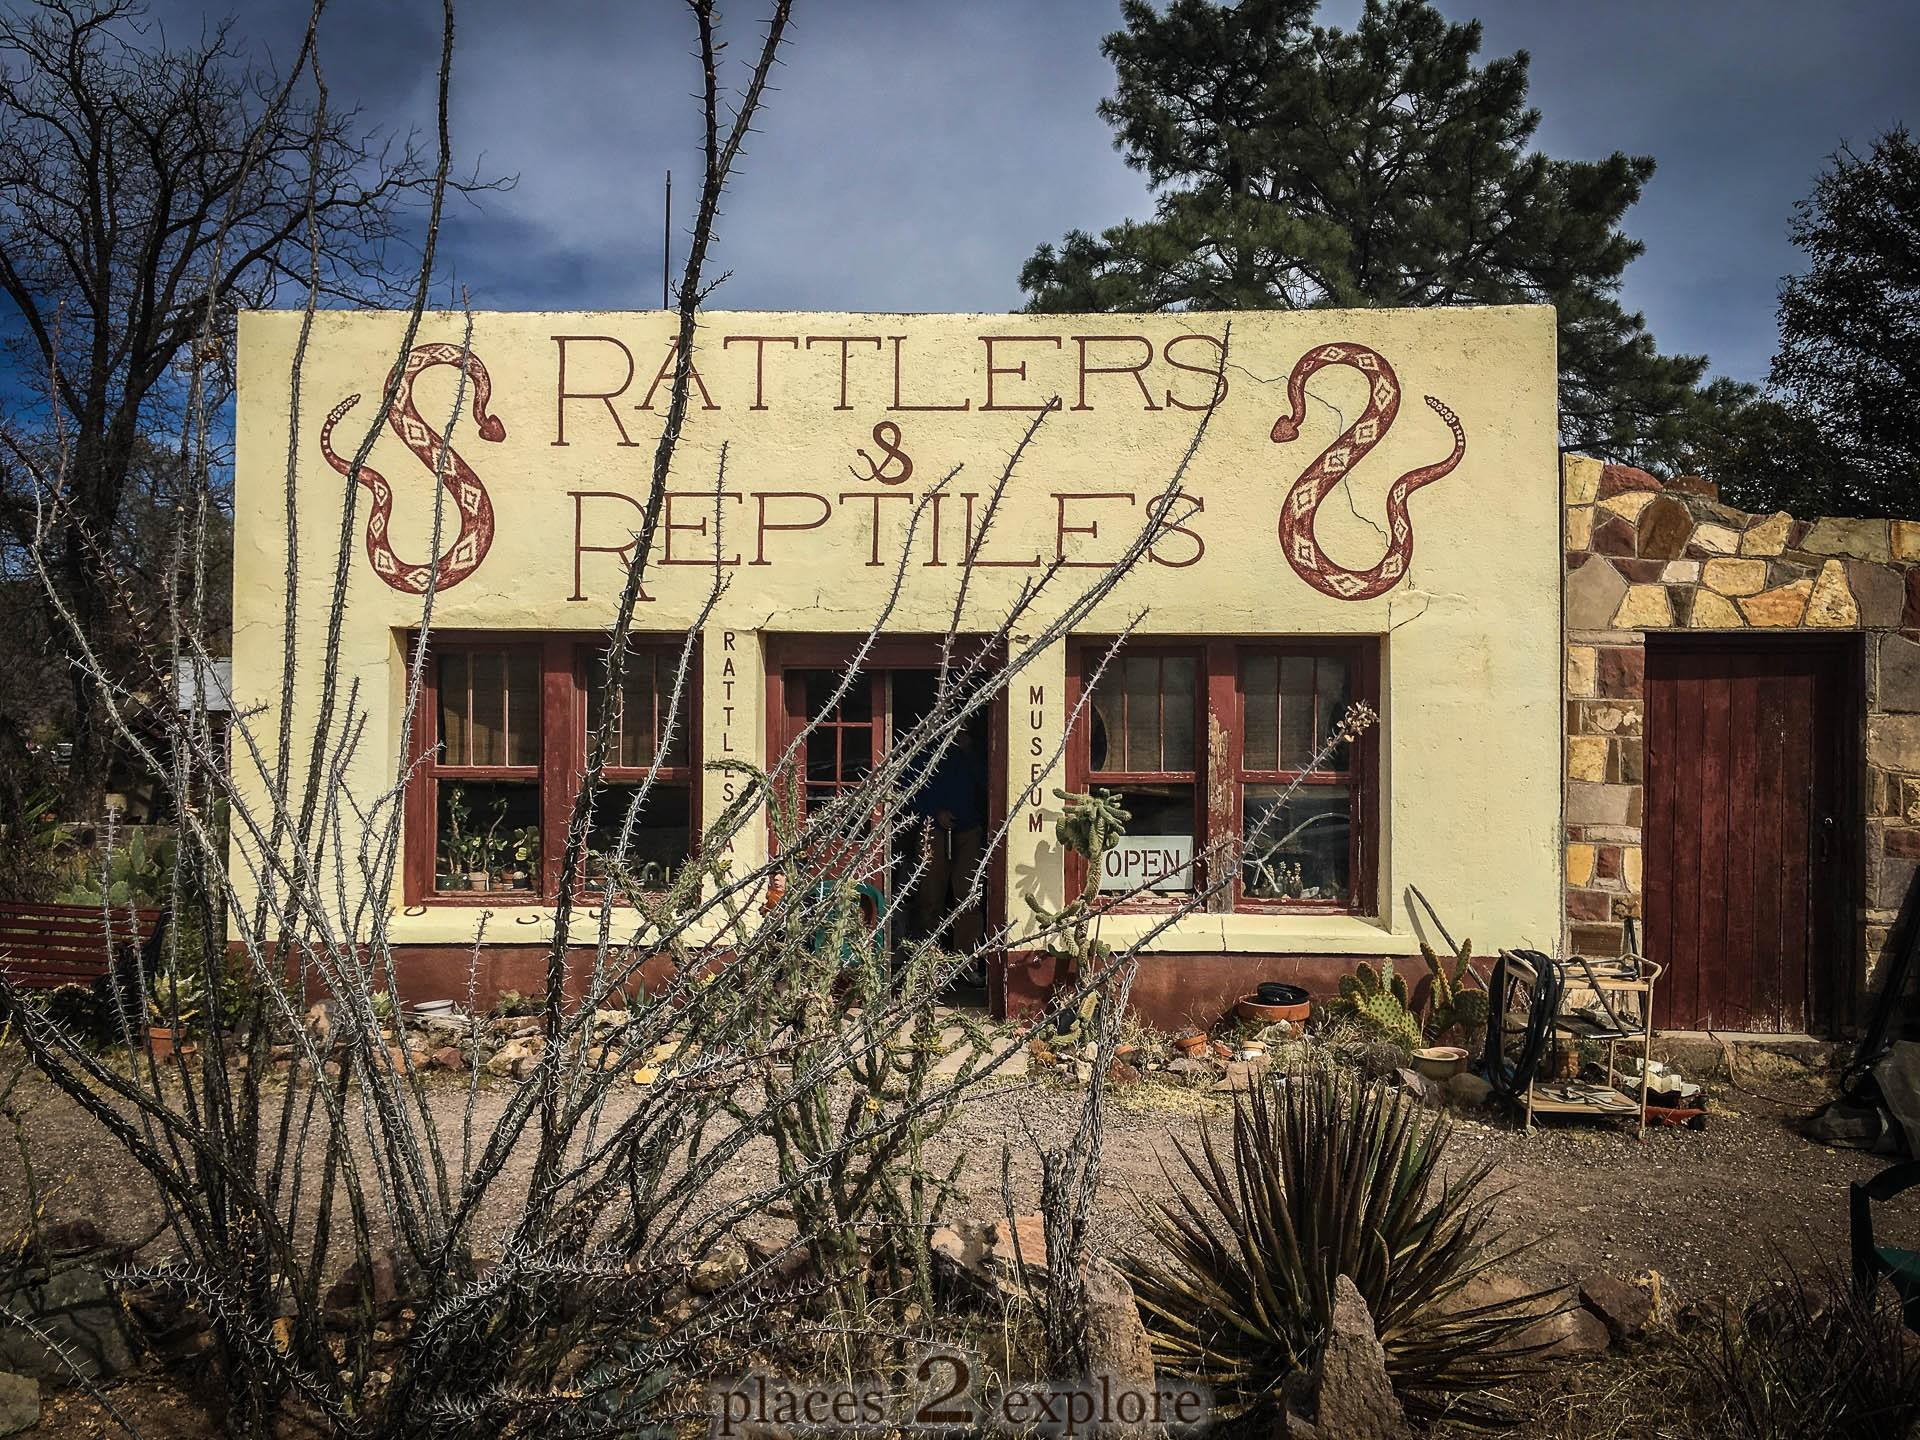 Rattlers and Reptiles